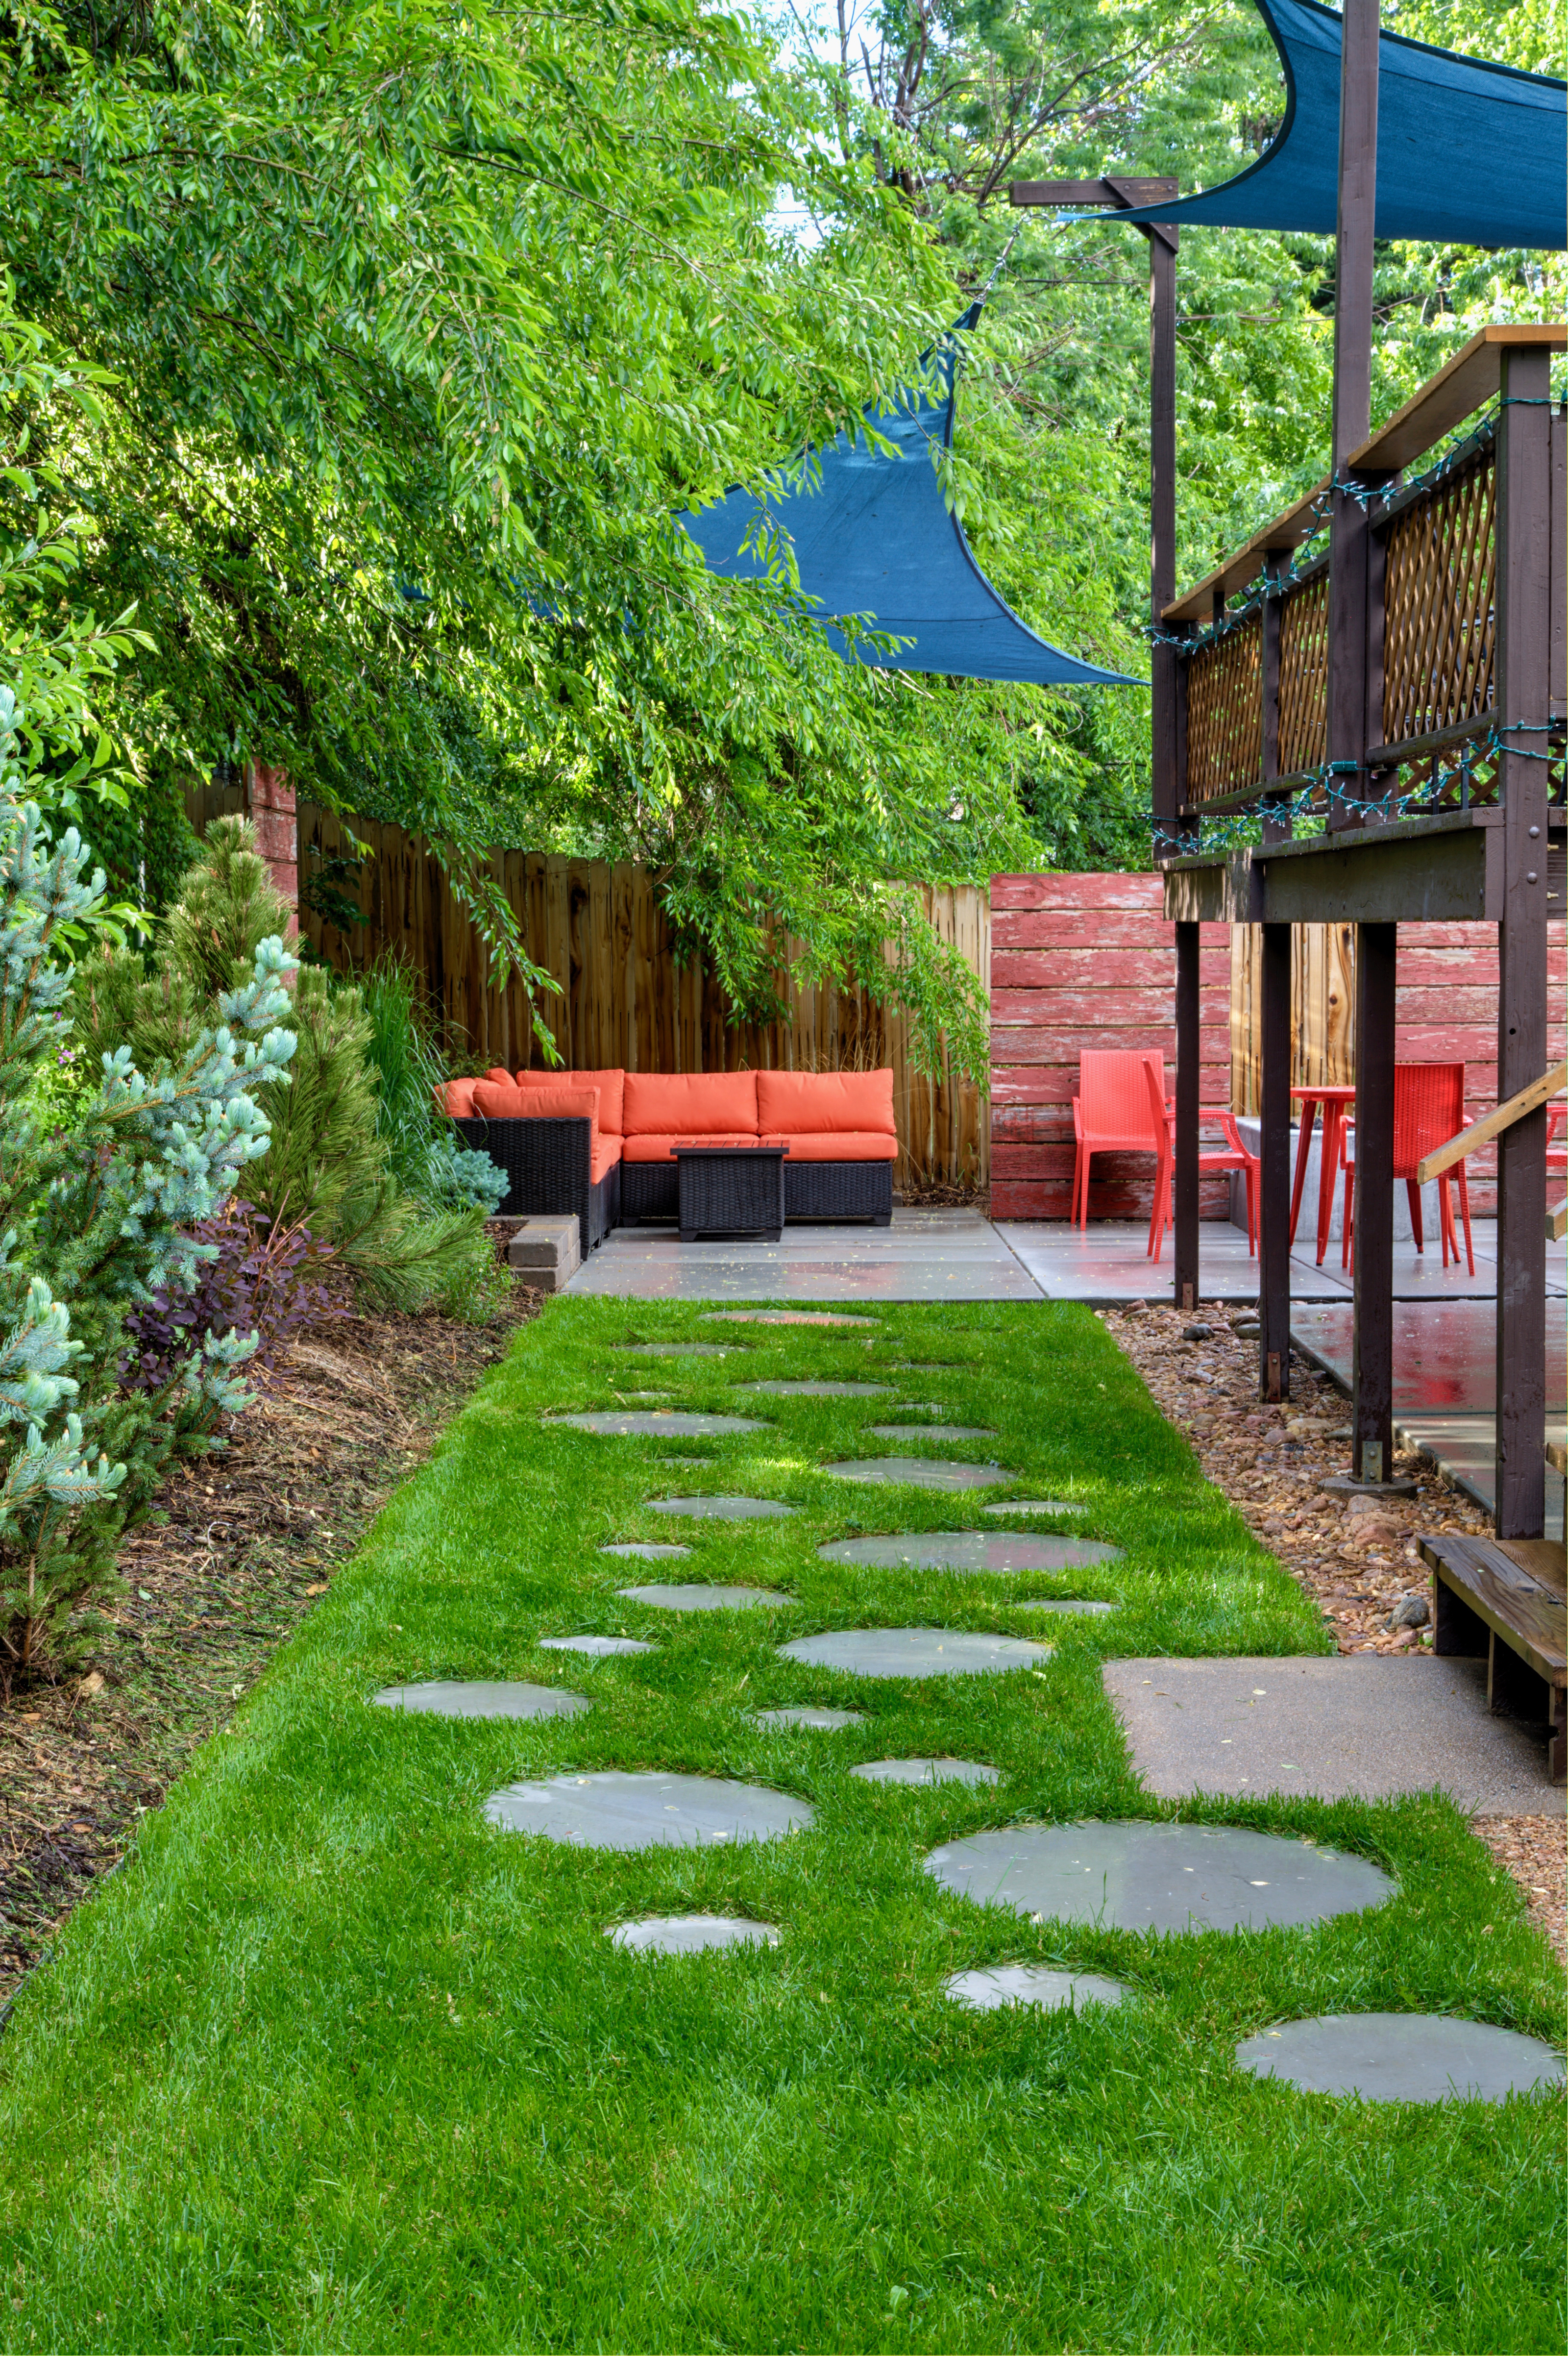 How To Keep Bugs Away From Patio Bug